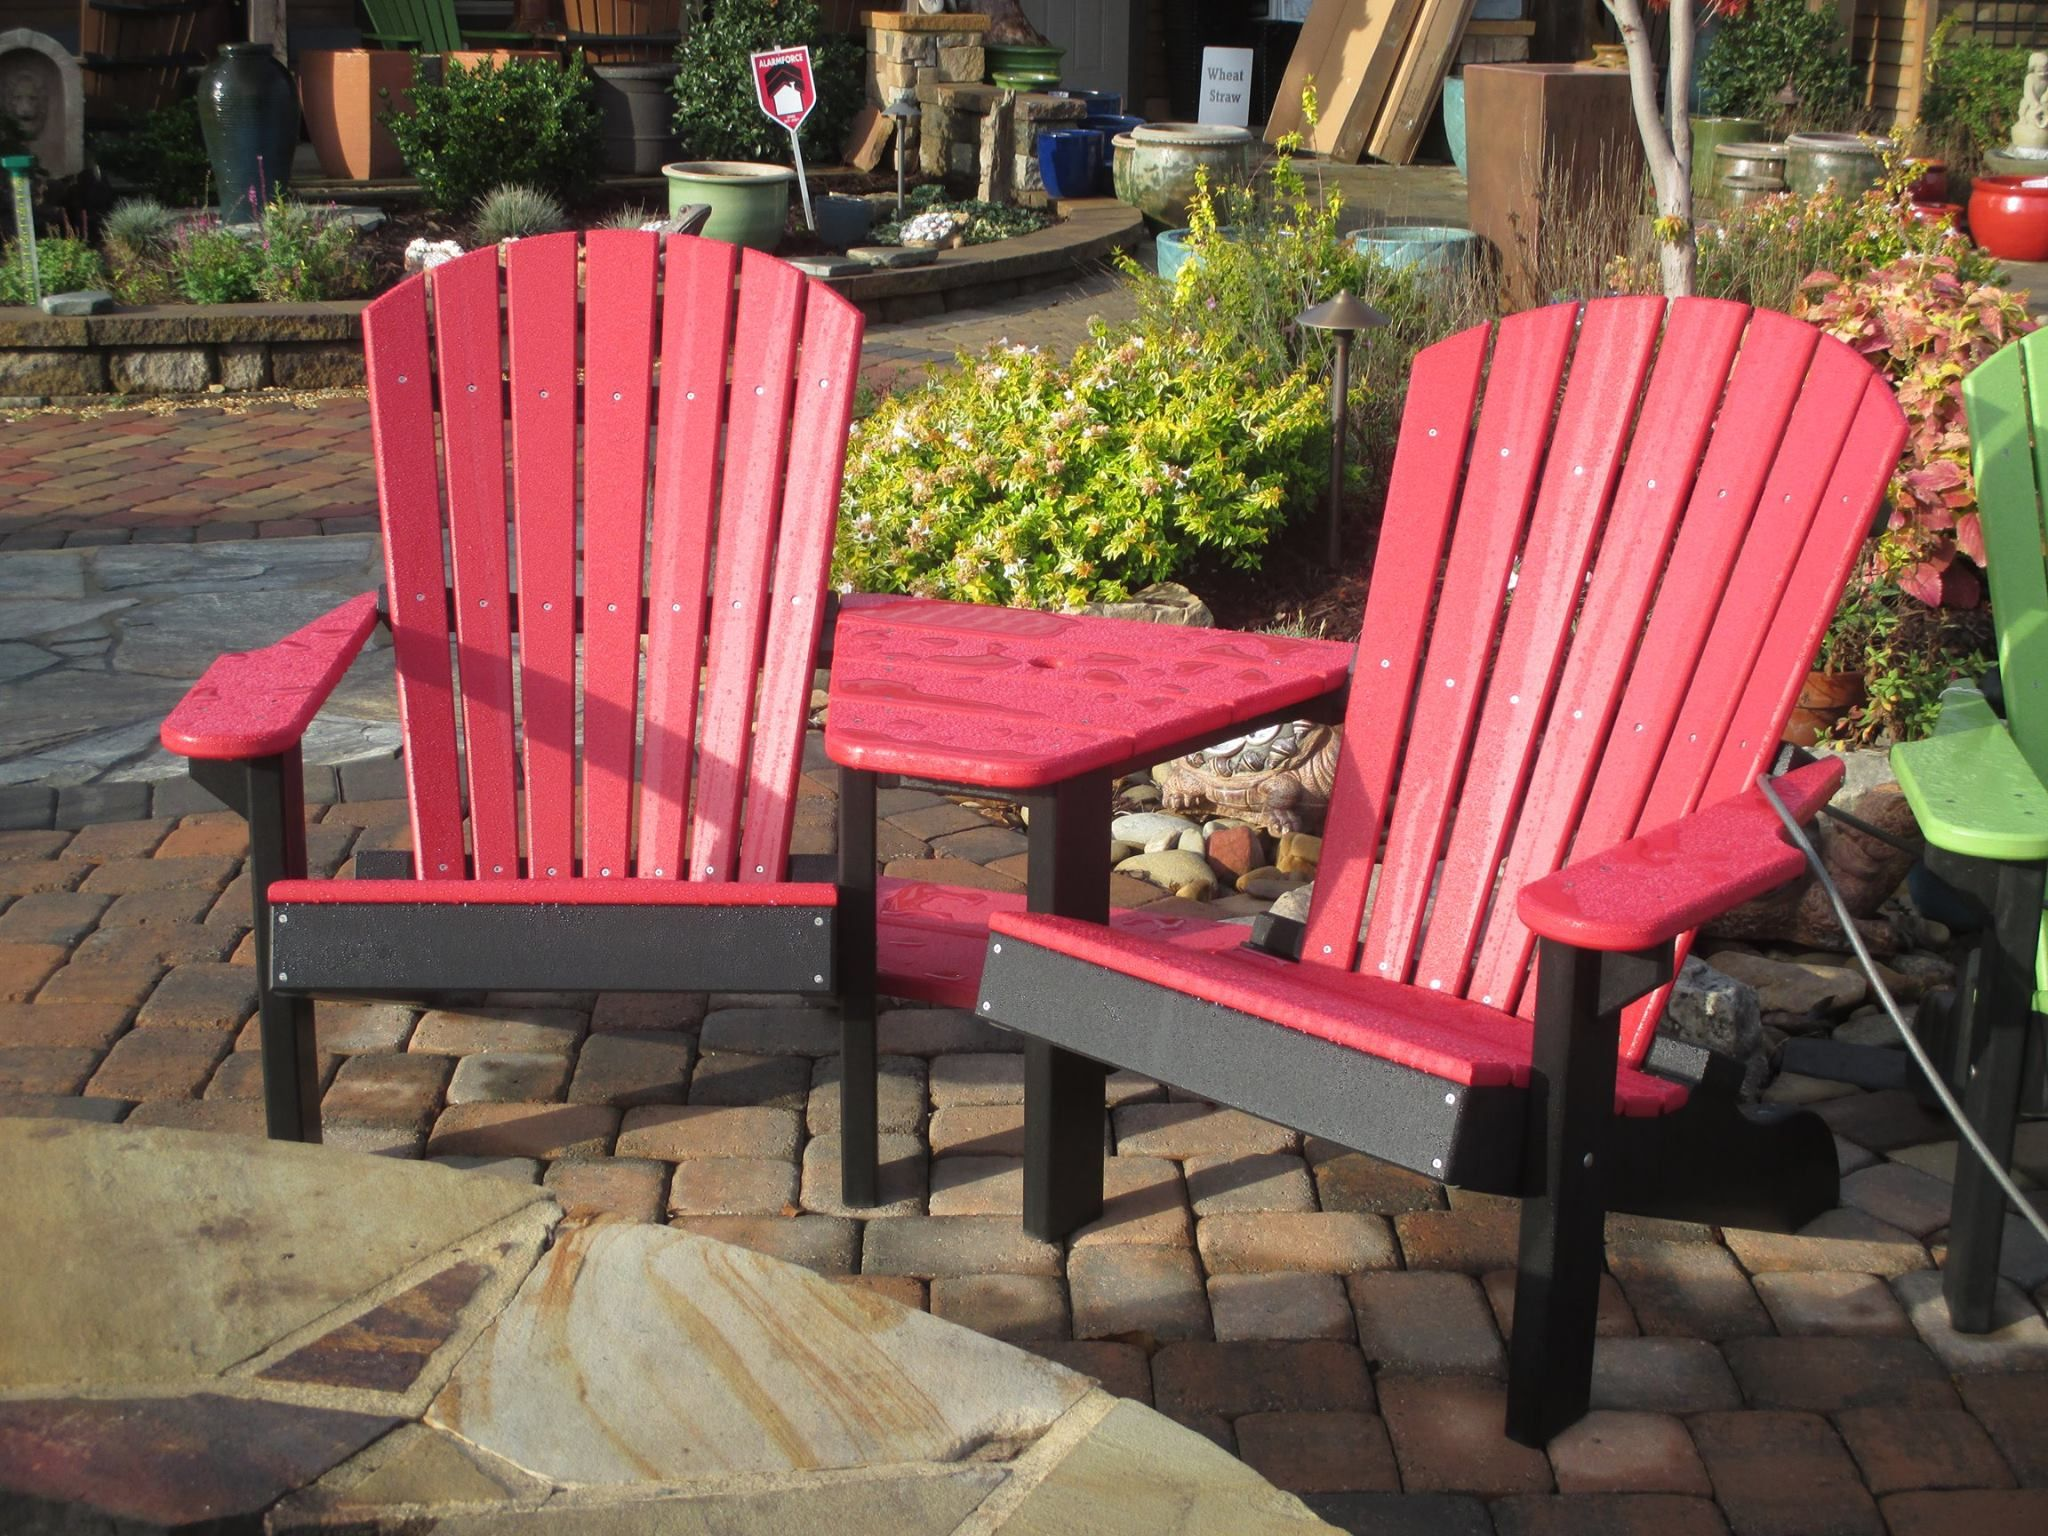 kids adirondack chair and table set with umbrella qdos kneeling posture review red trimmed in black that